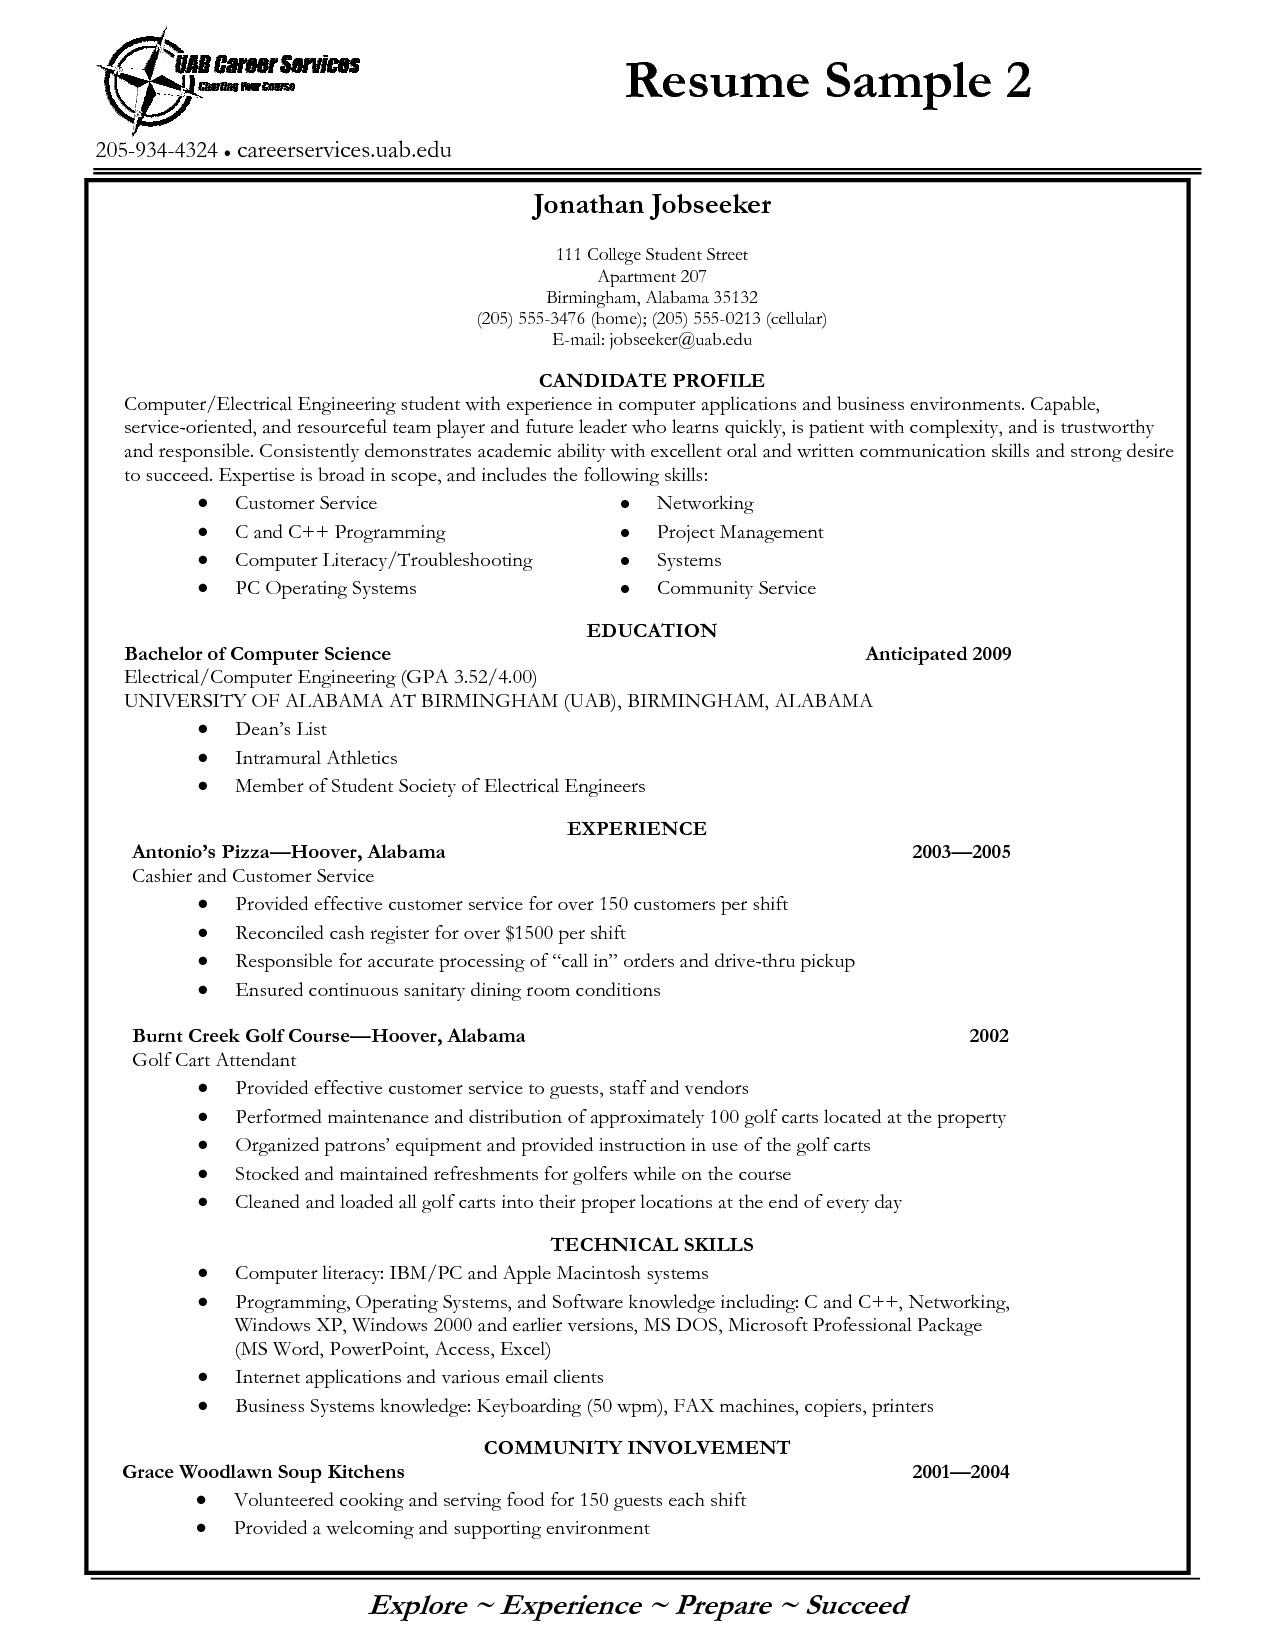 Tags College Graduate Resume No Experience College Graduate Resume .